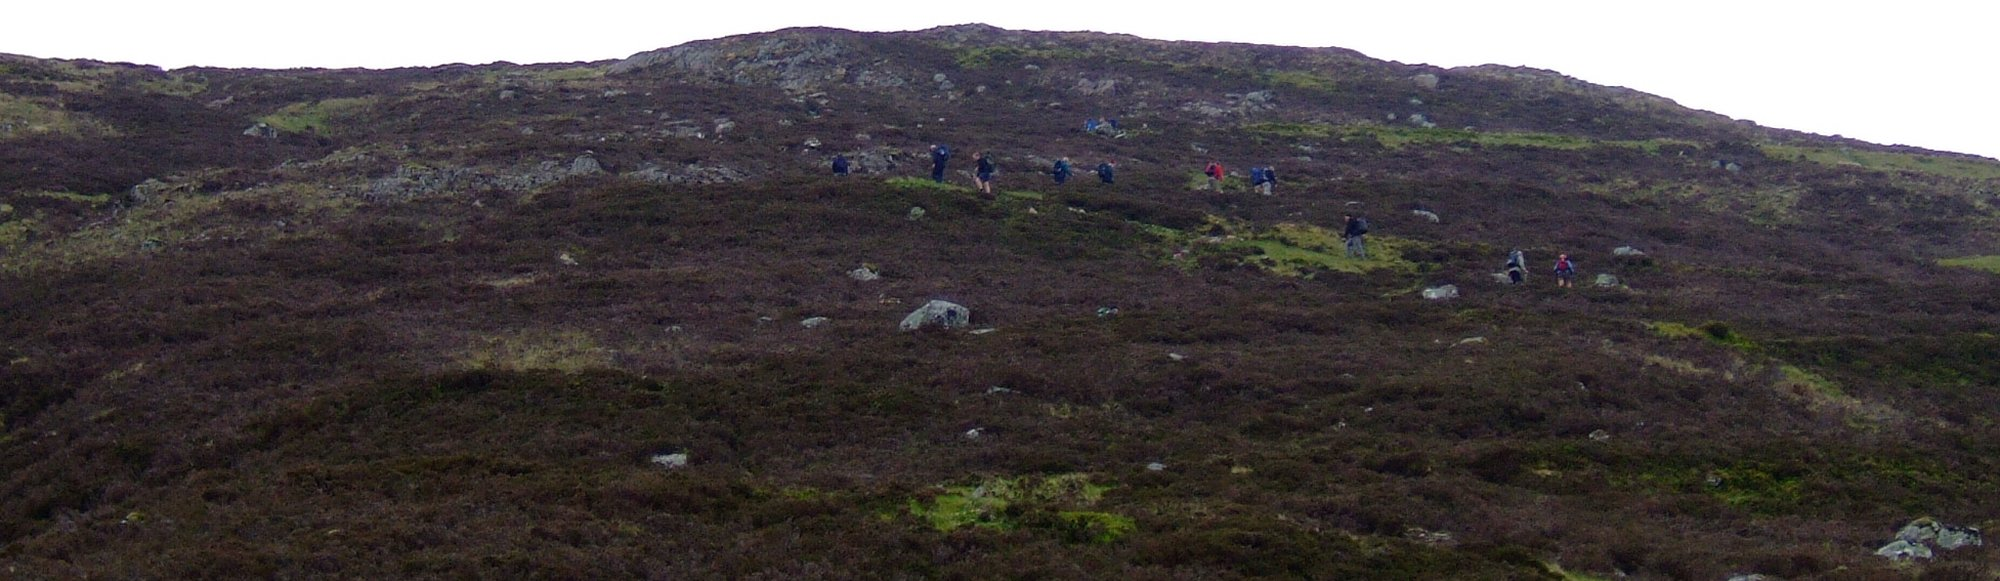 Climbing the Devil's Staircase - about 16 people ahead of me